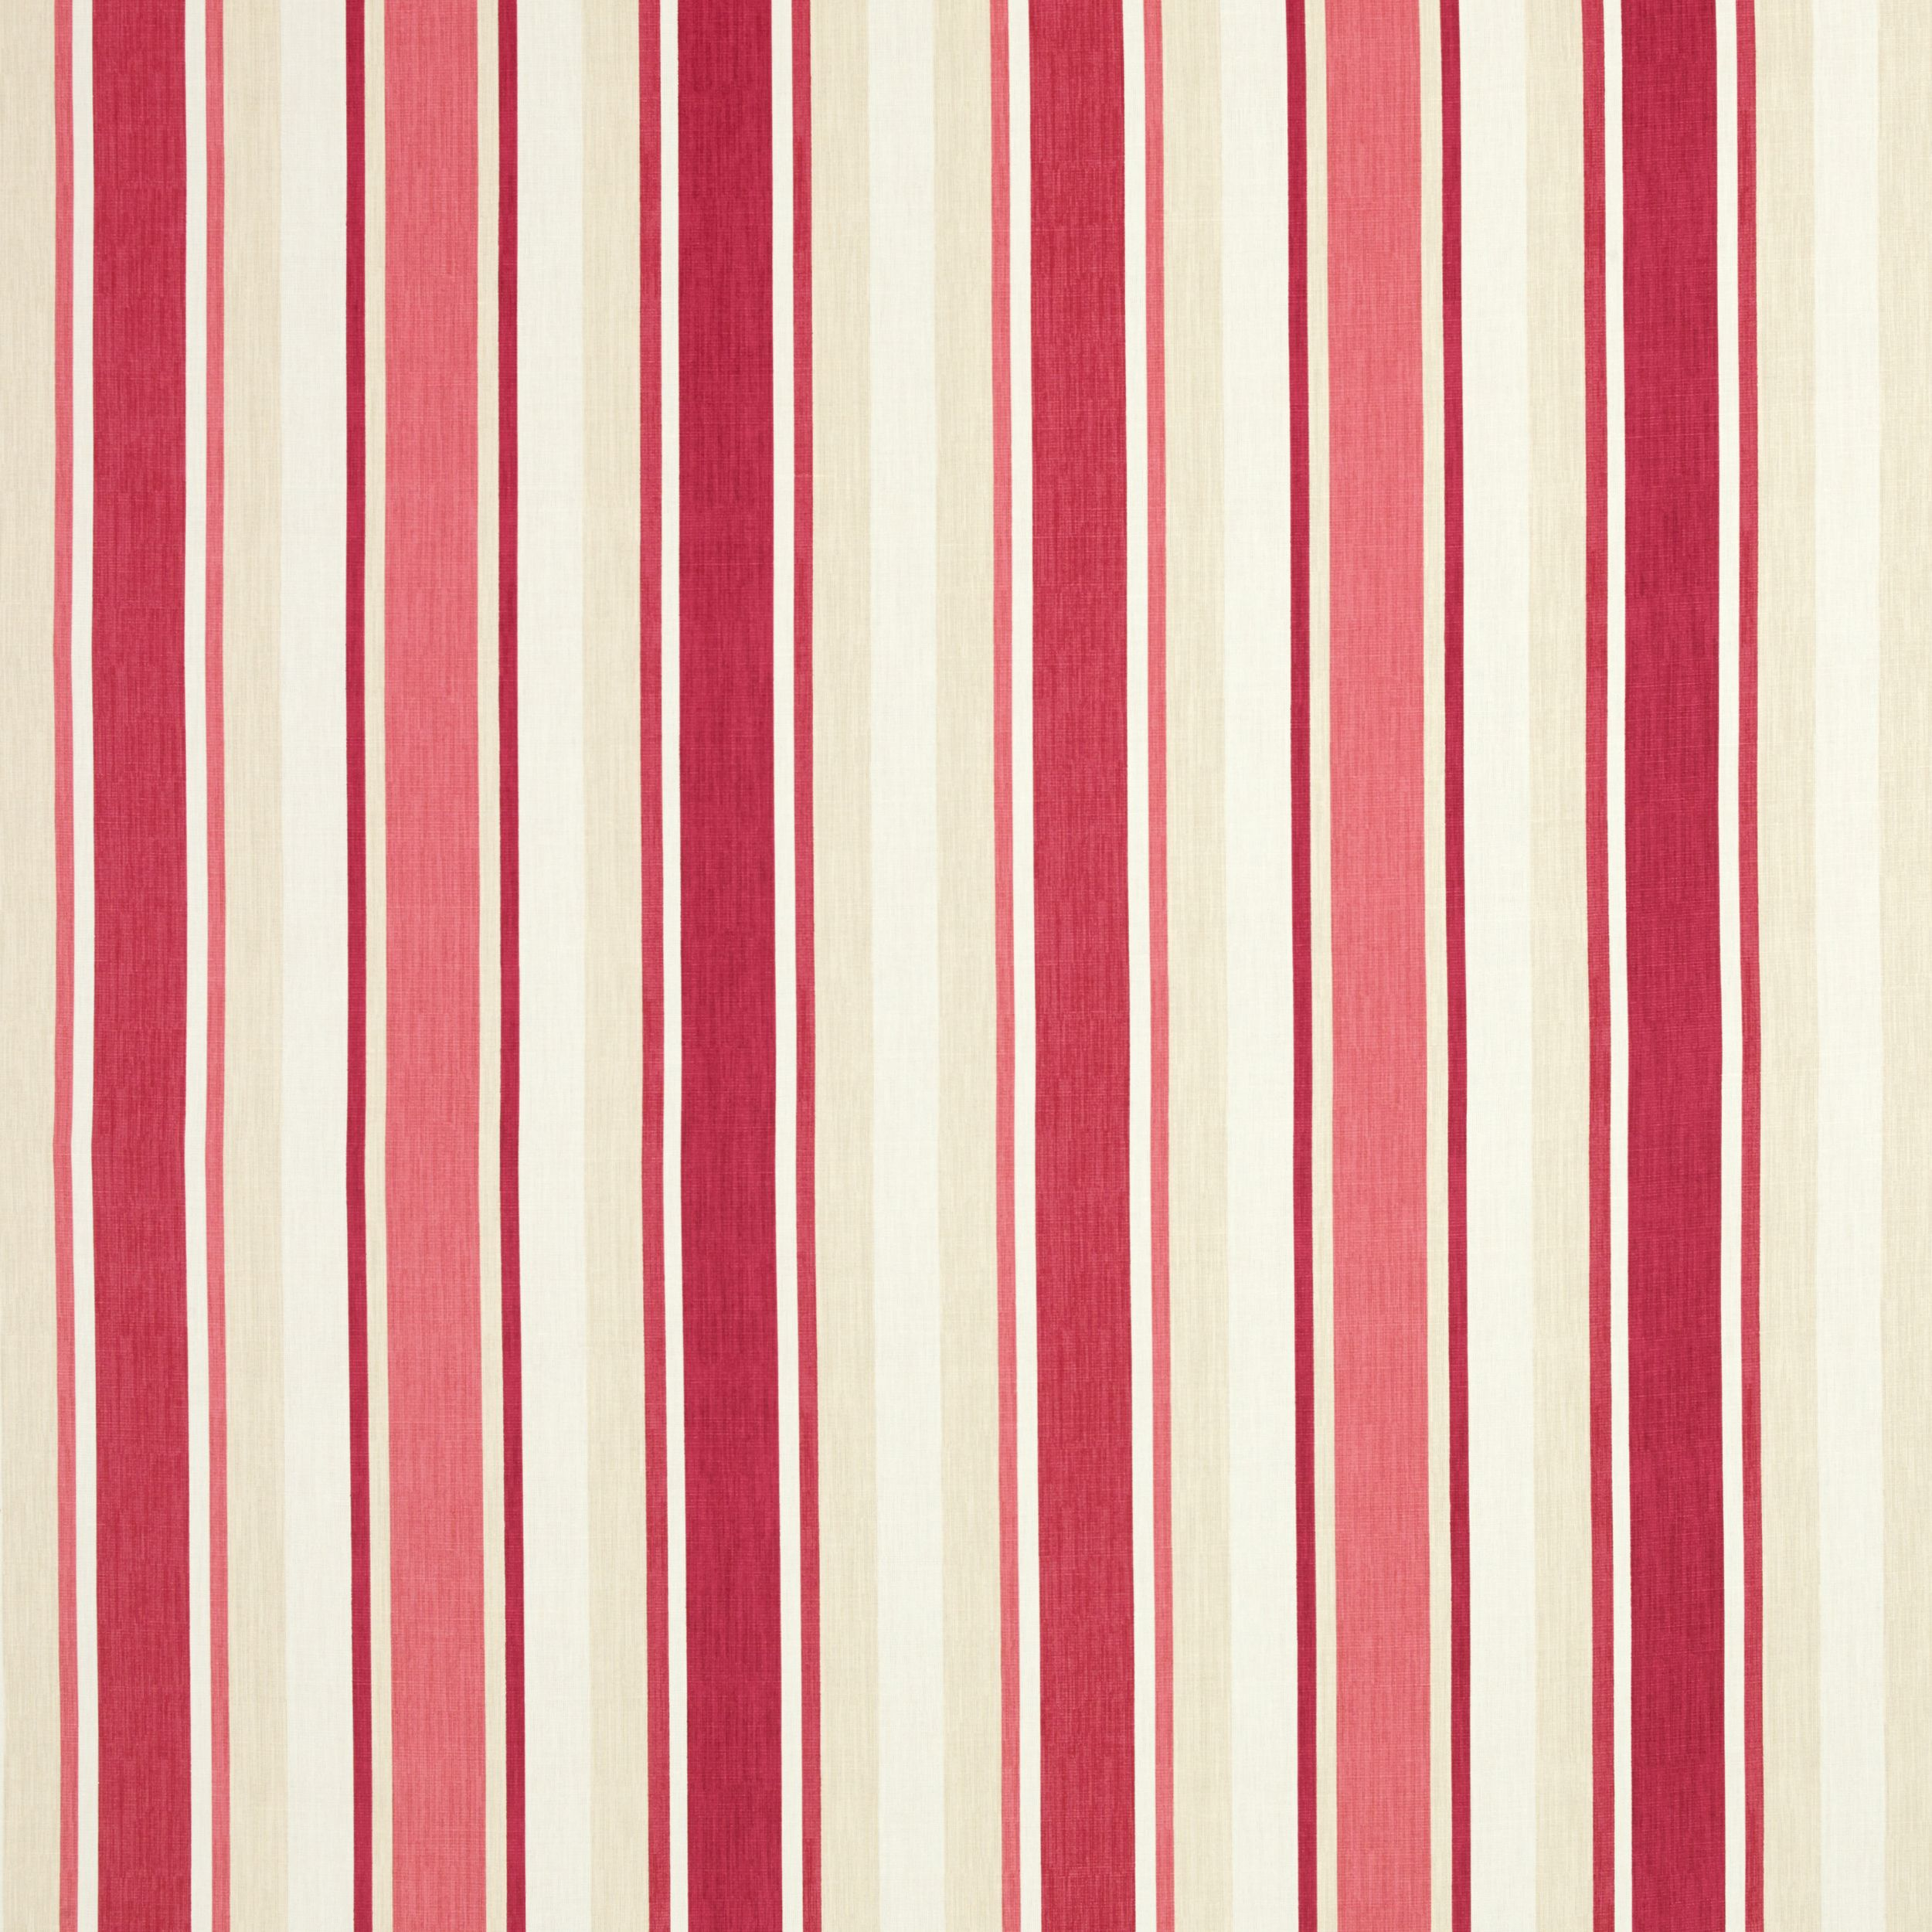 Awning Stripe Pale Cranberry Red Linen Mix Curtain Fabric at Laura ...